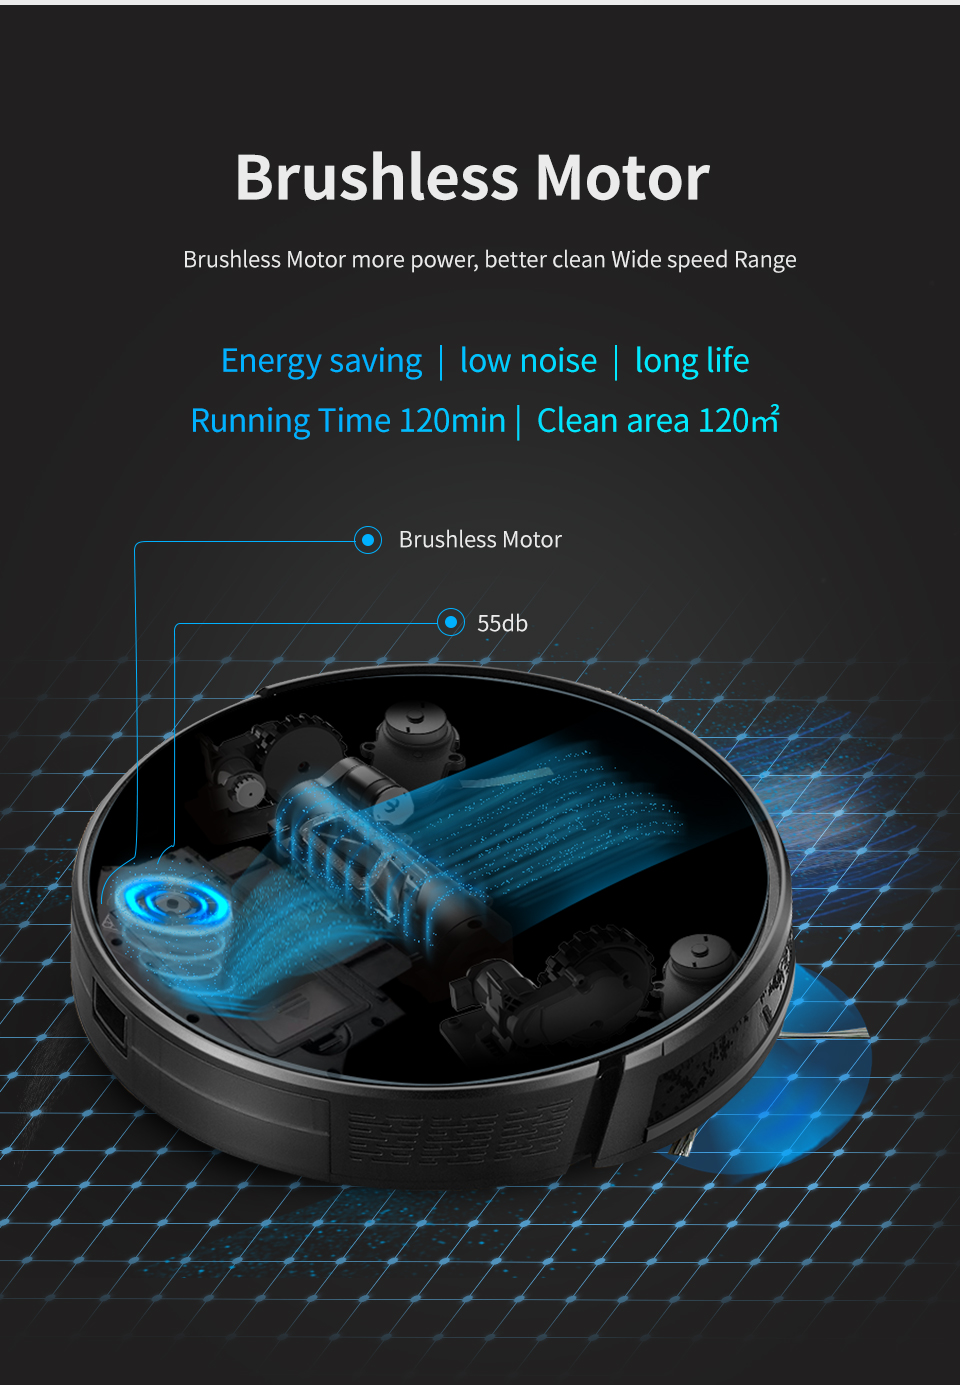 H1987c448bcf34df7b06561a3e266a481K Proscenic 820P Robot Vacuum Cleaner Smart Planned 1800Pa Suction with wet cleaning for Home Carpet Cleaner Washing Smart Robot